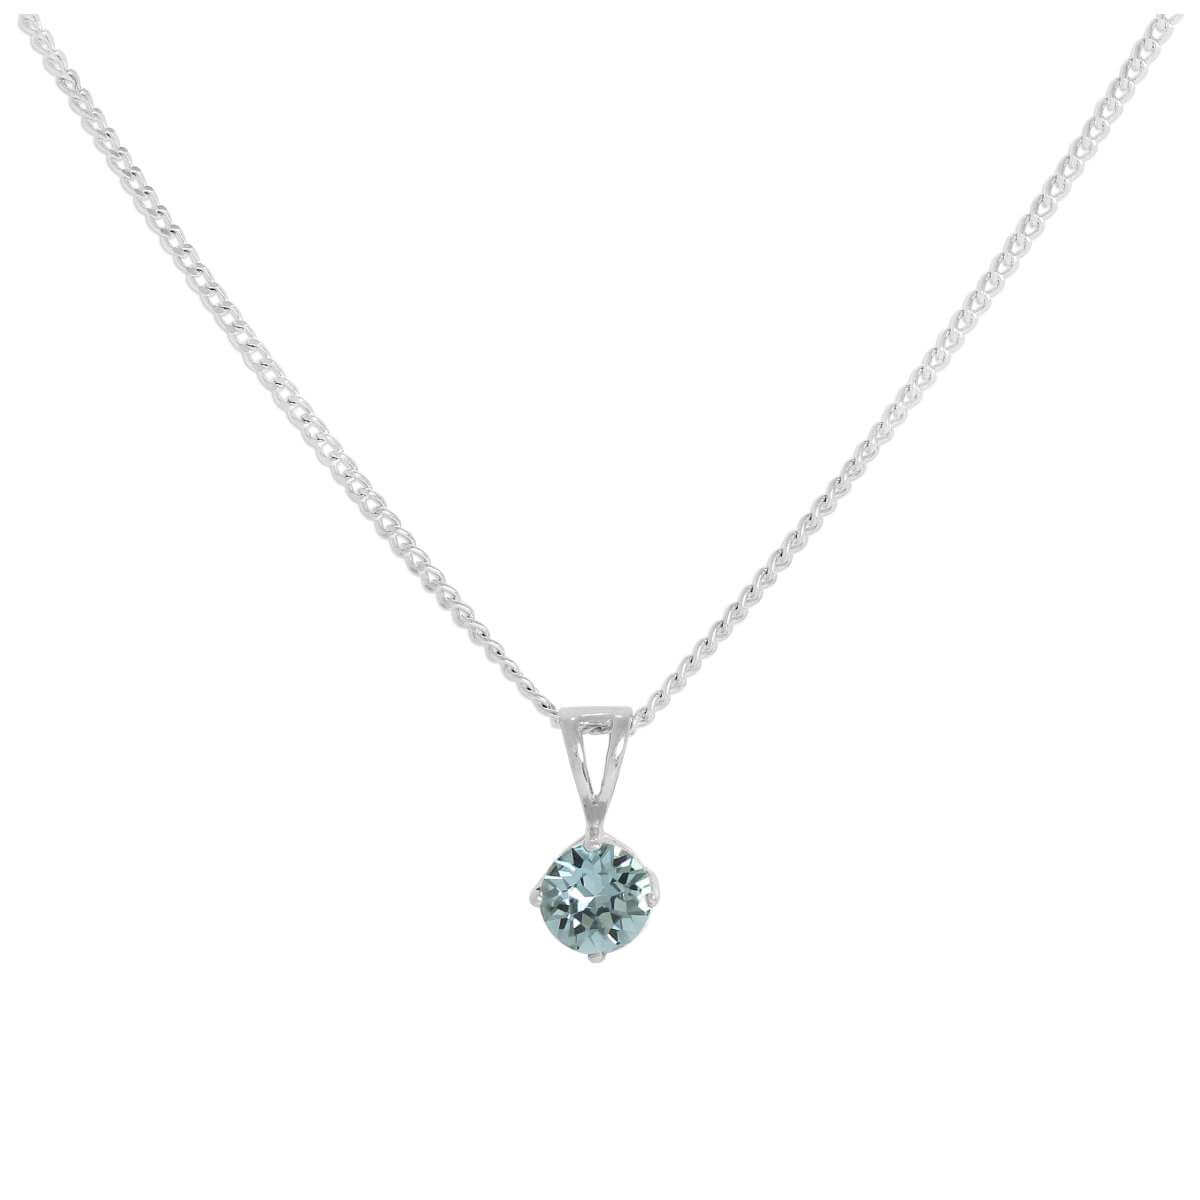 Sterling Silver & Topaz Crystal Made with Swarovski Elements November Birthstone Pendant Necklace 16 - 24 Inches